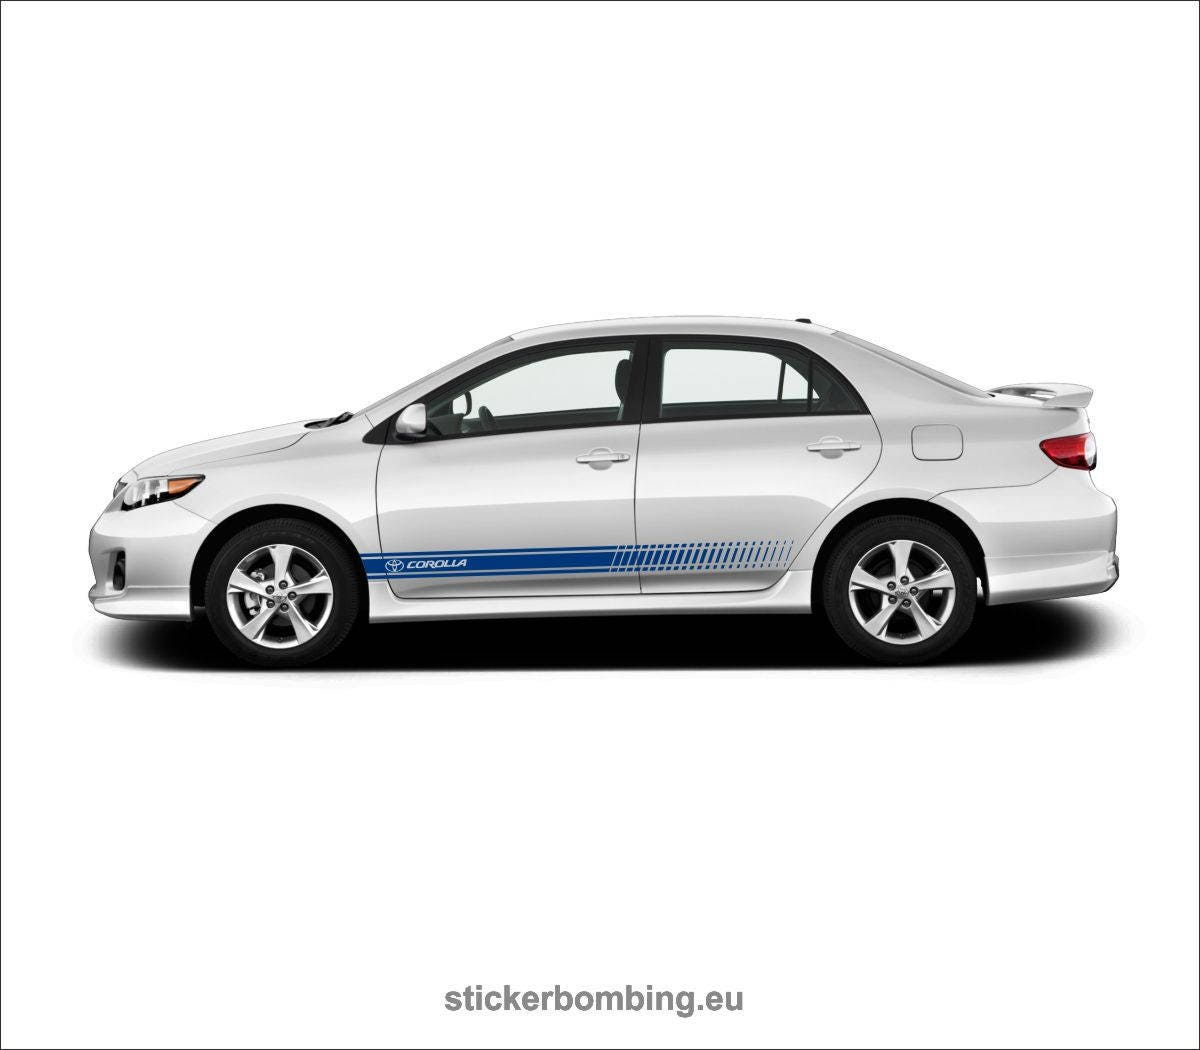 Toyota corolla lower panel door stripes vinyl graphics and decals kits 2012 1017 corolla stripes